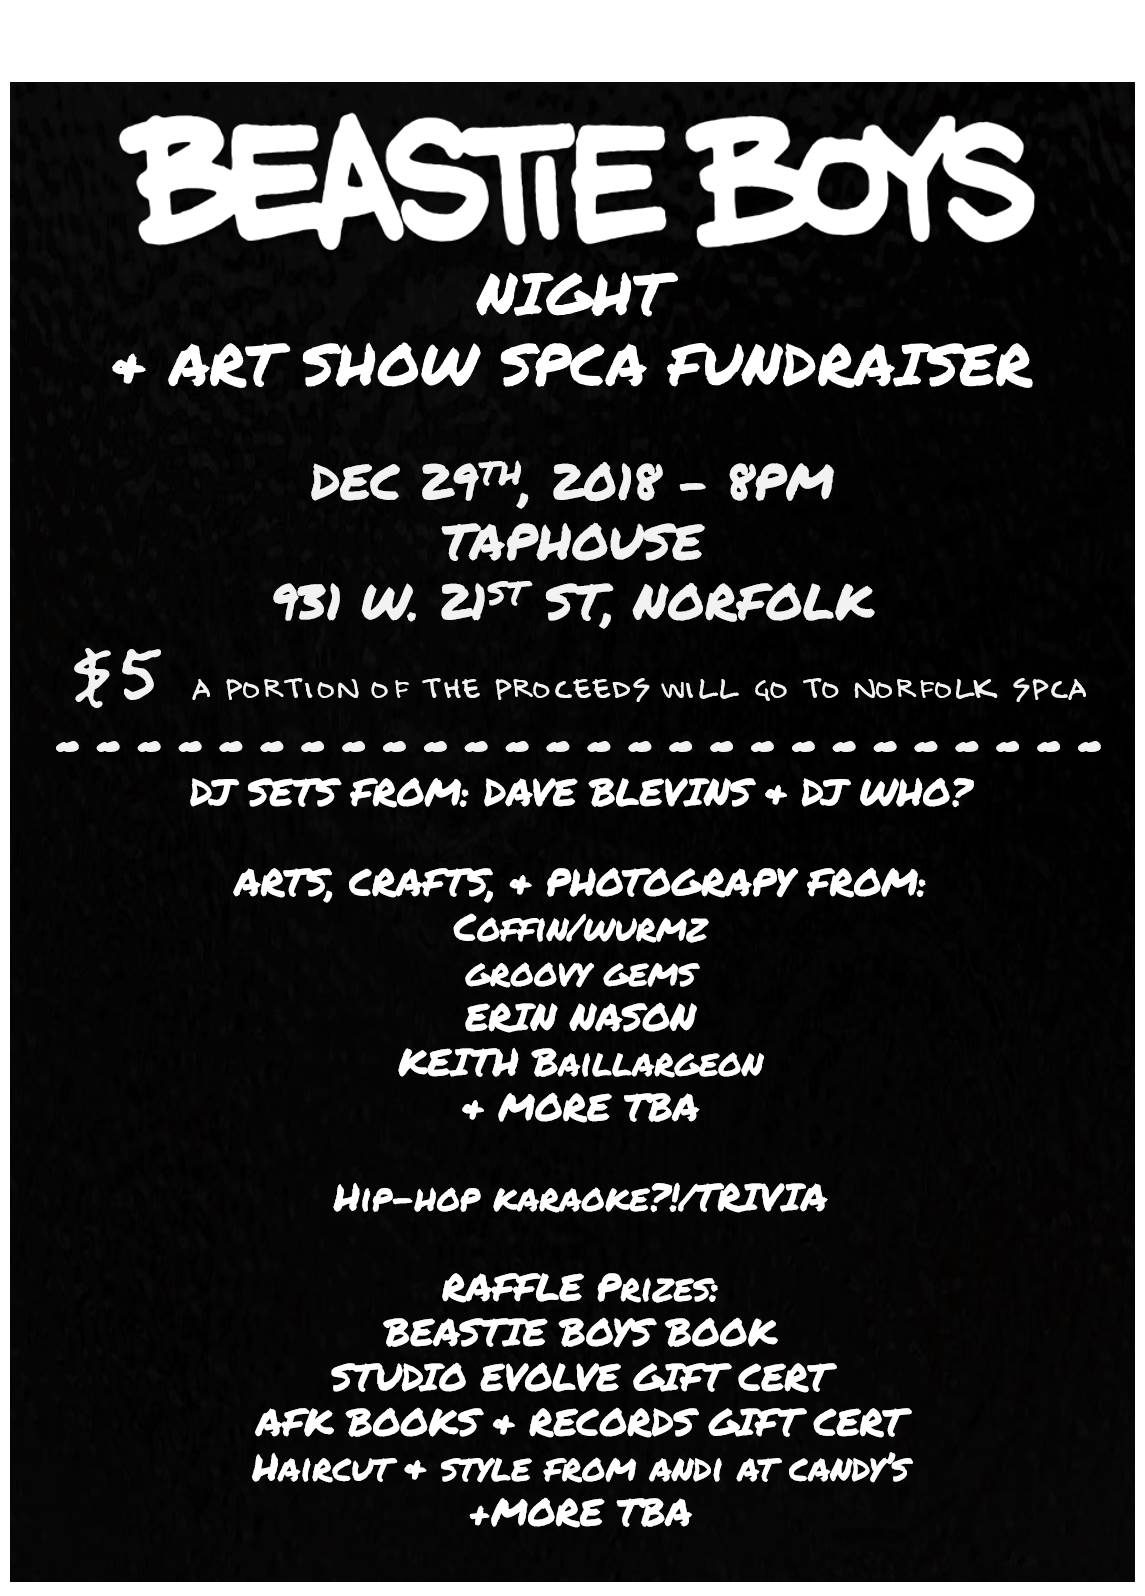 Beastie Boys Night & Art Show SPCA Fundraiser